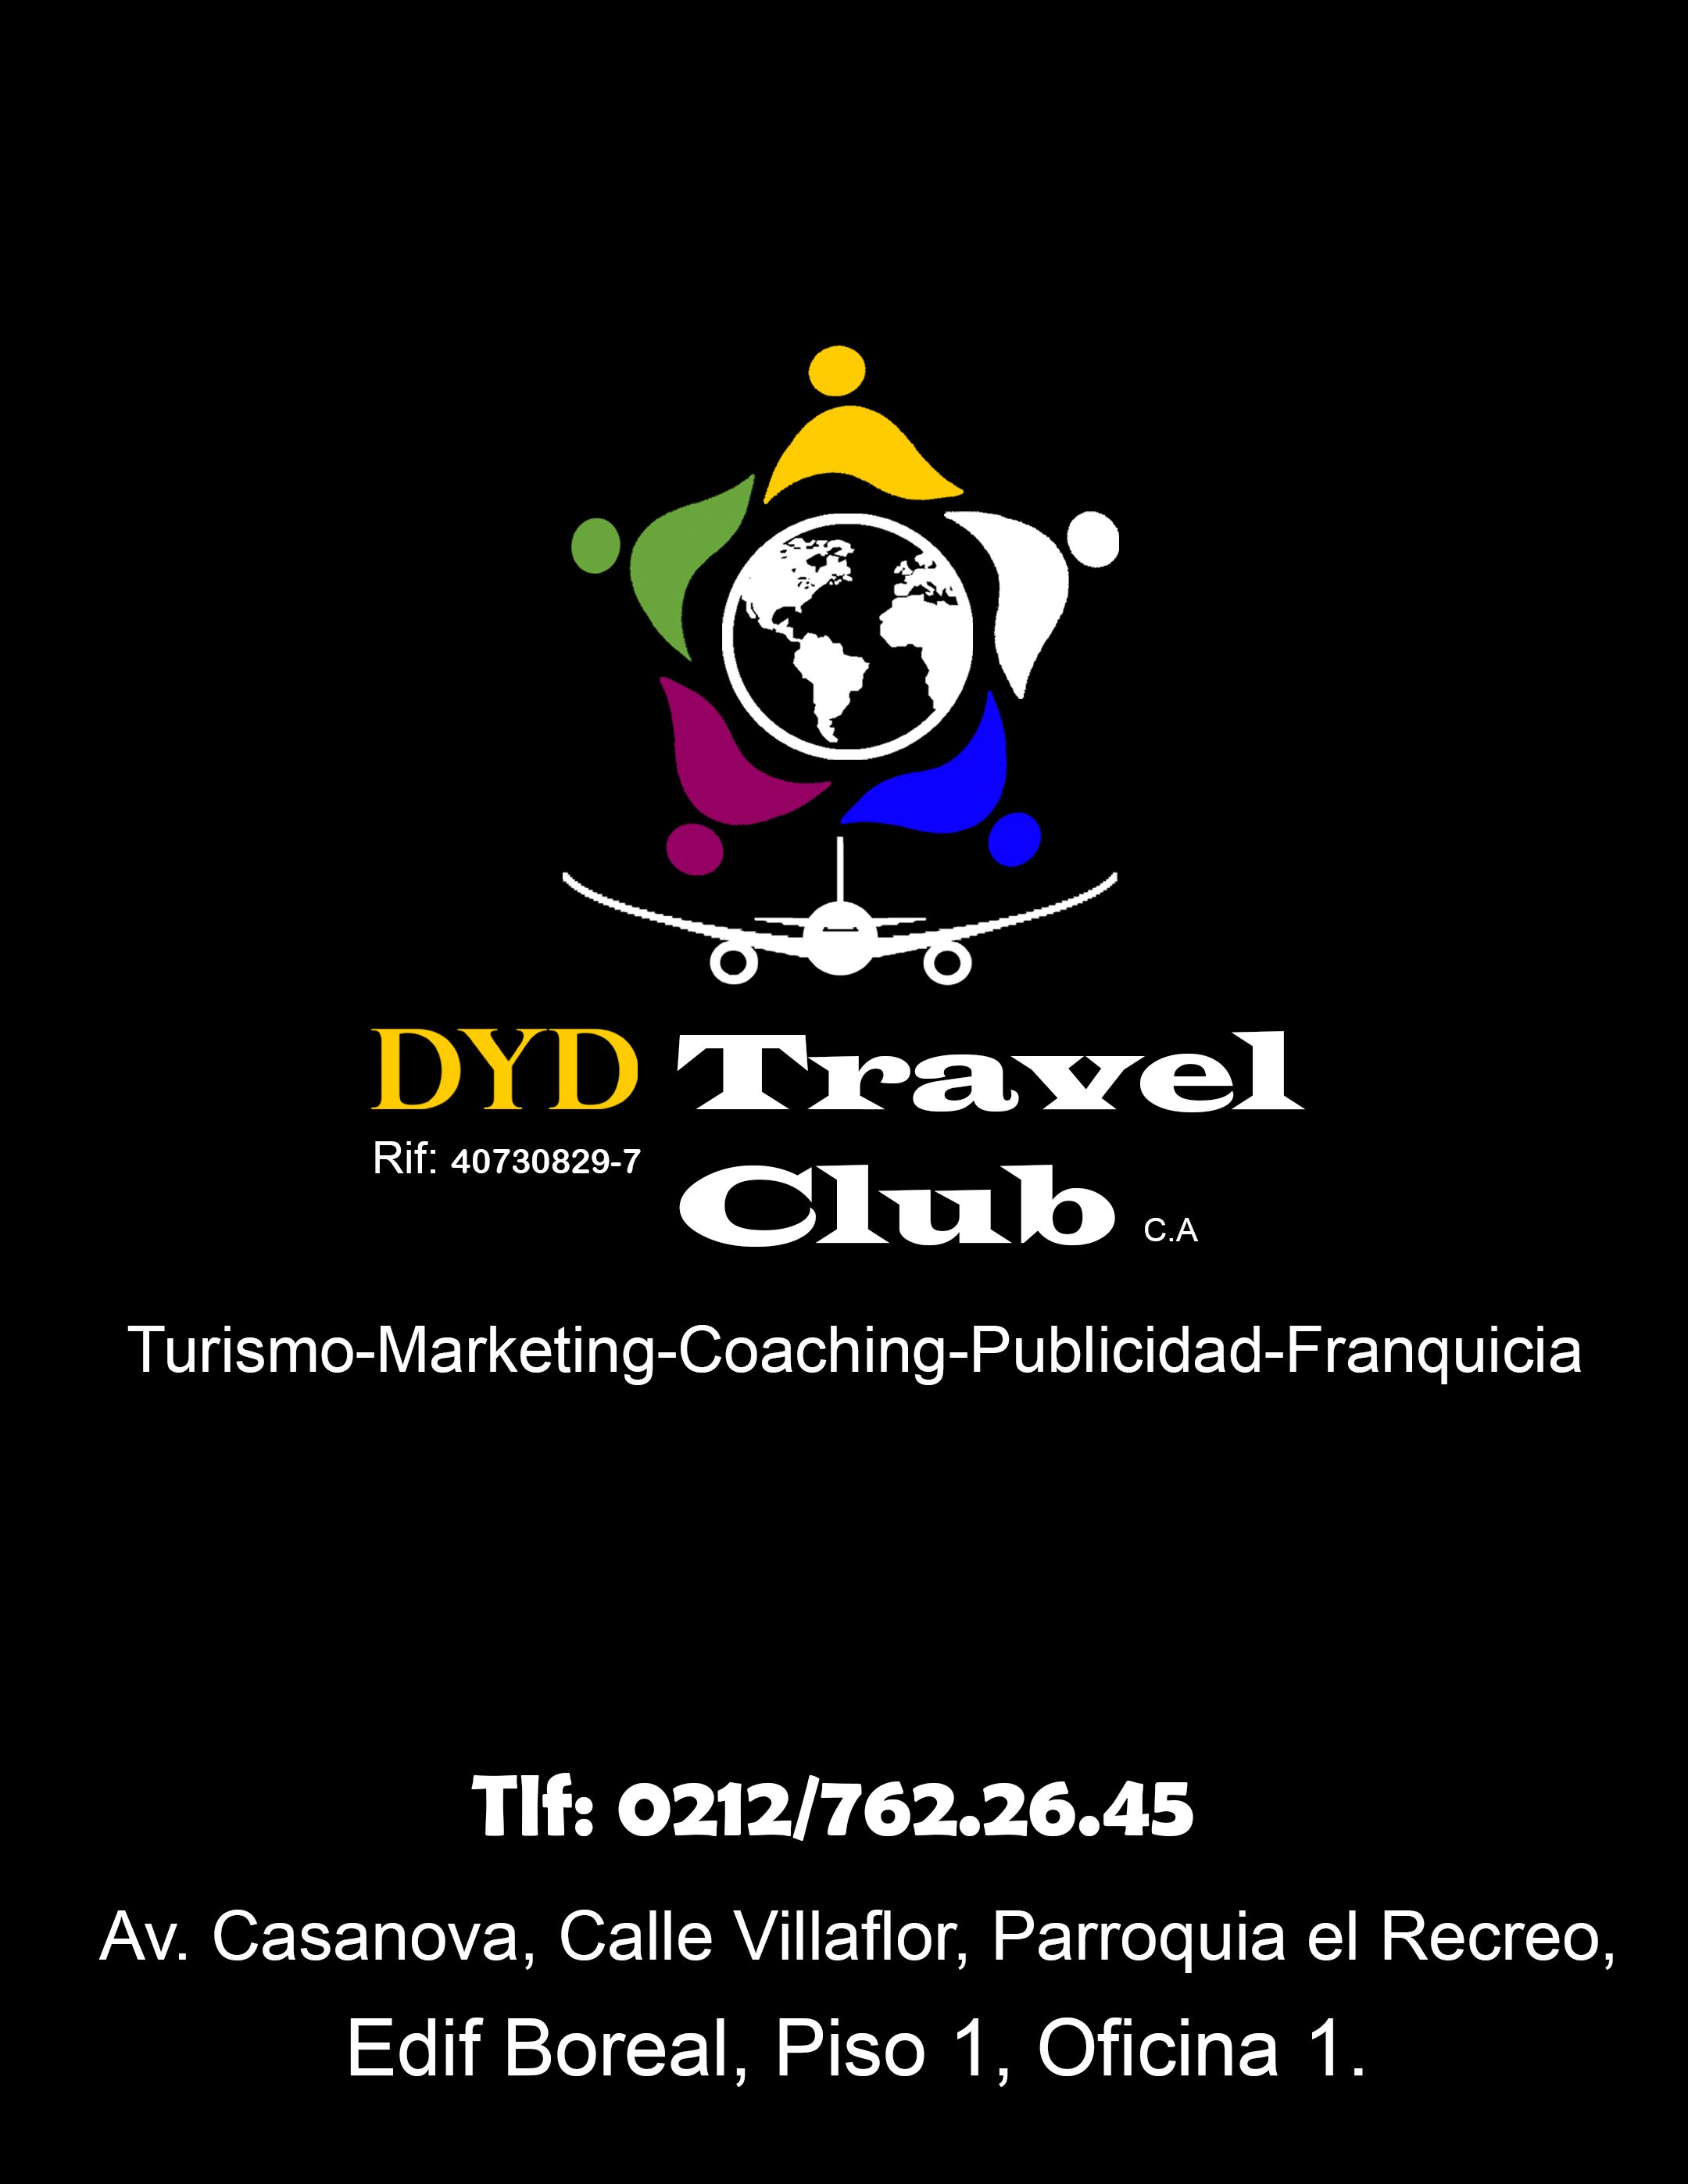 DyD Travel Club C.A.